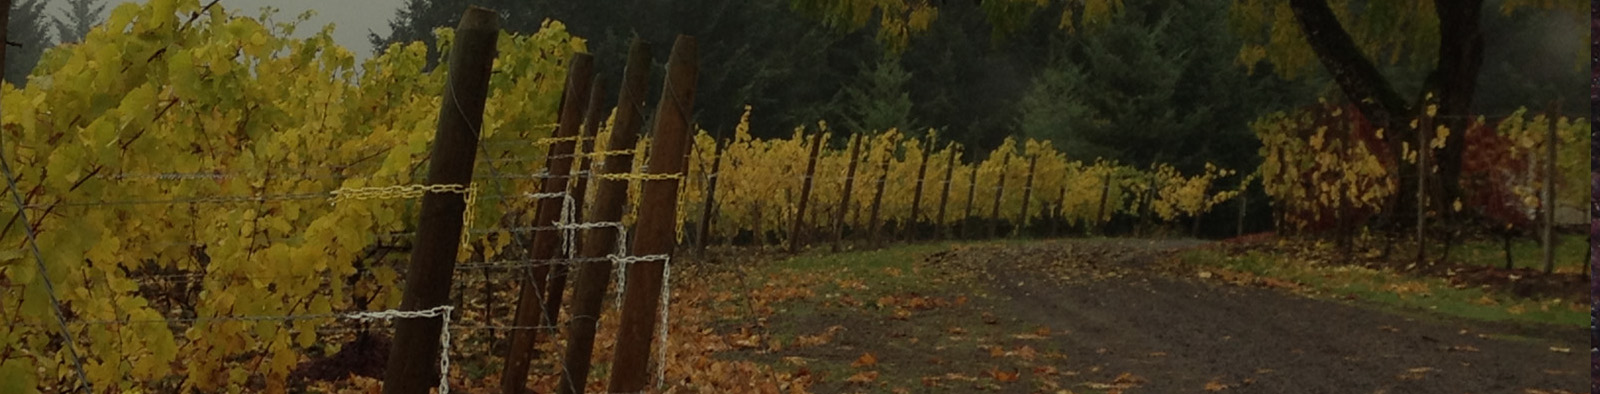 Autumn in the vineyard at Styring in Newberg, Oregon